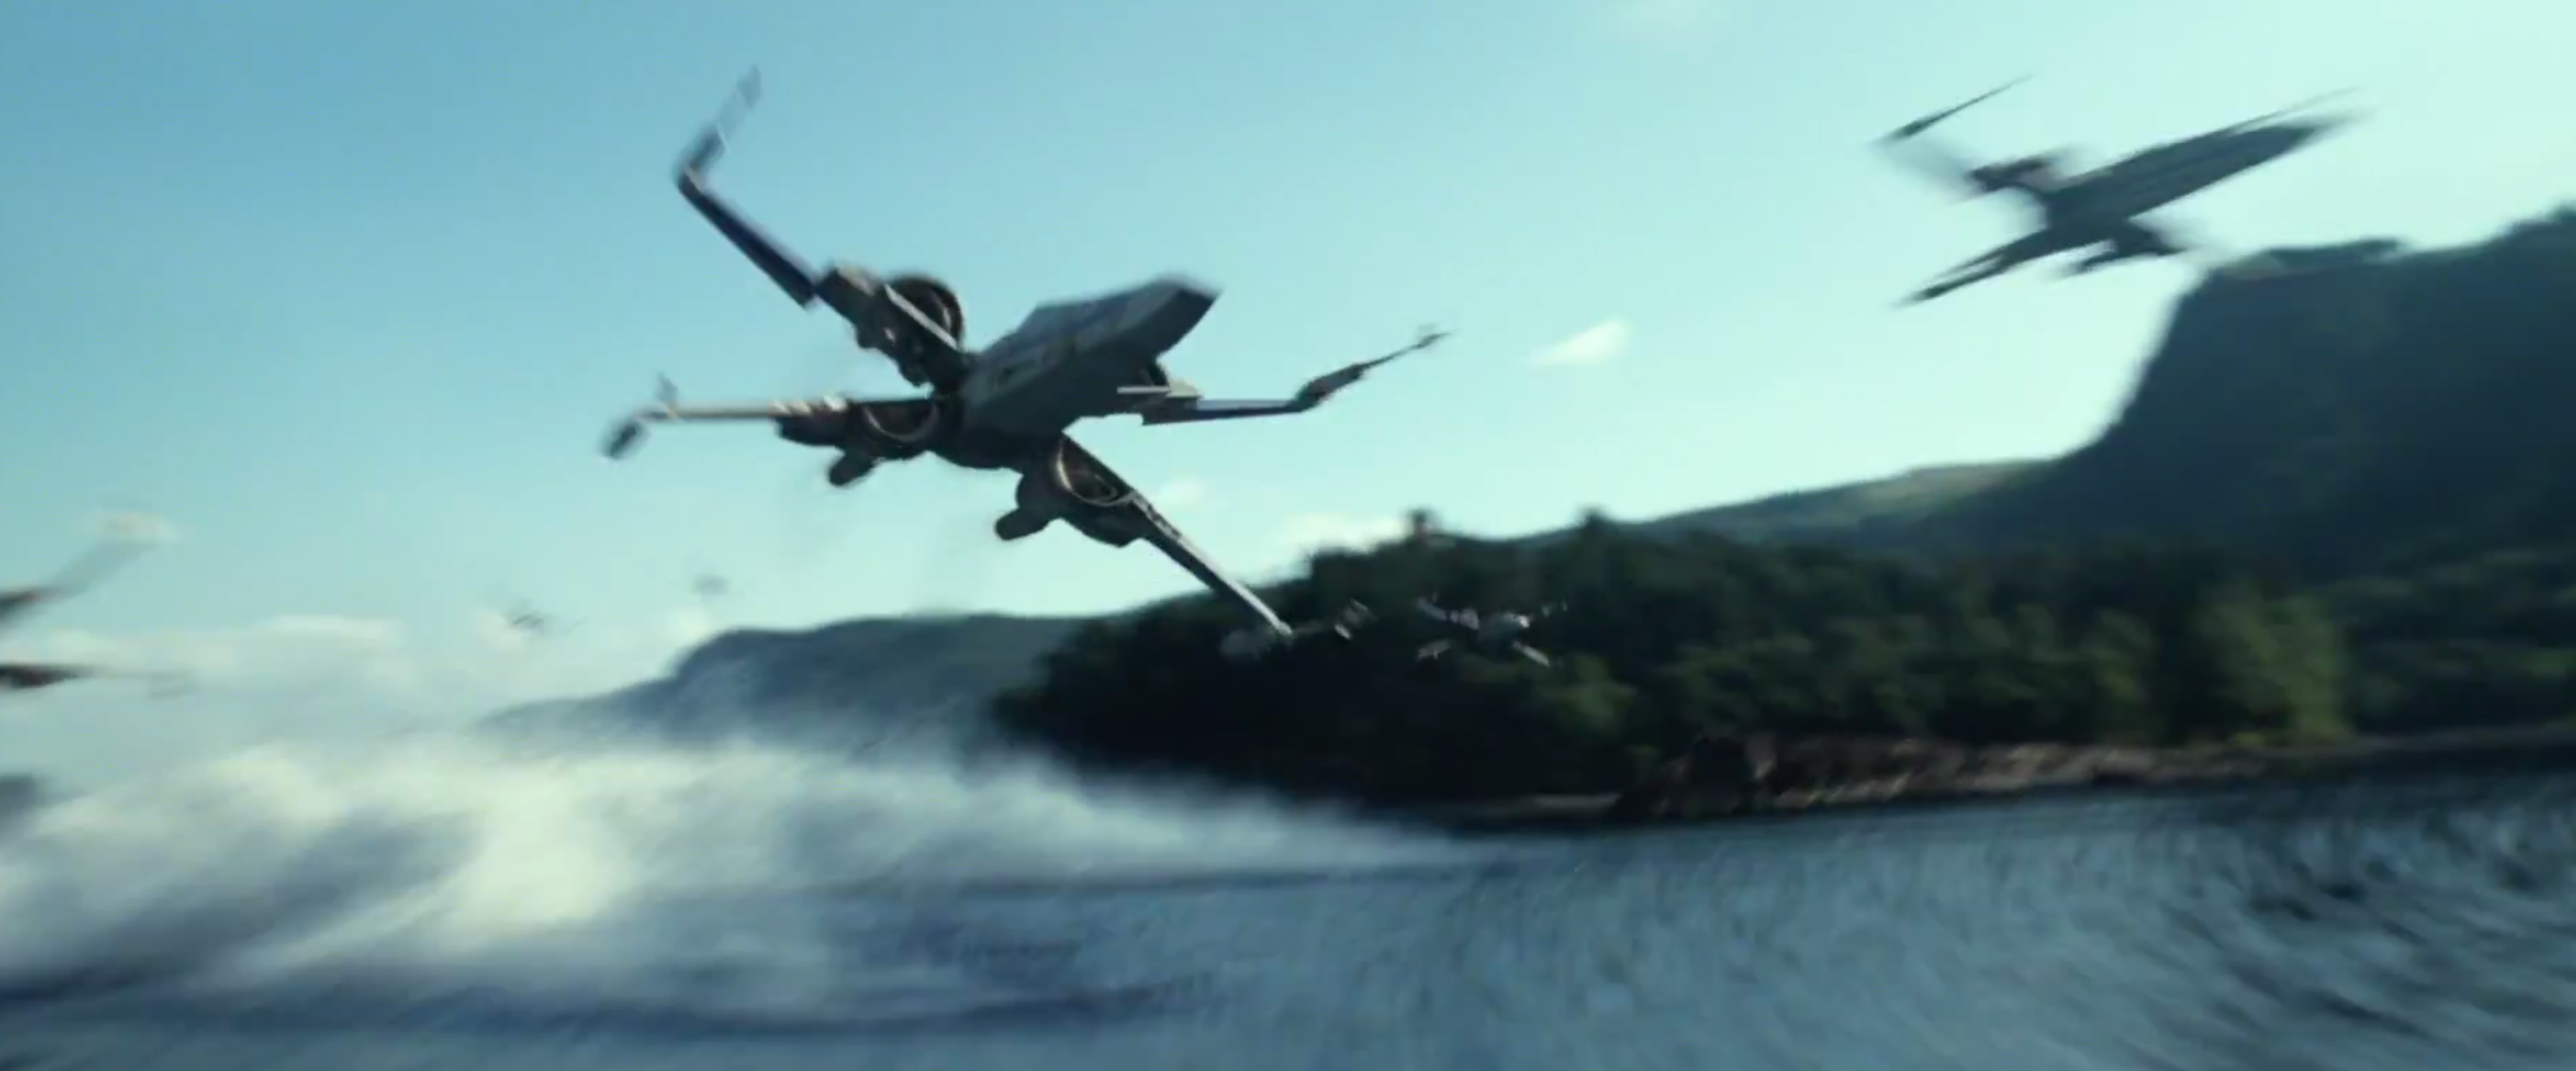 Star-Wars--The-Force-Awakens---X-Wing